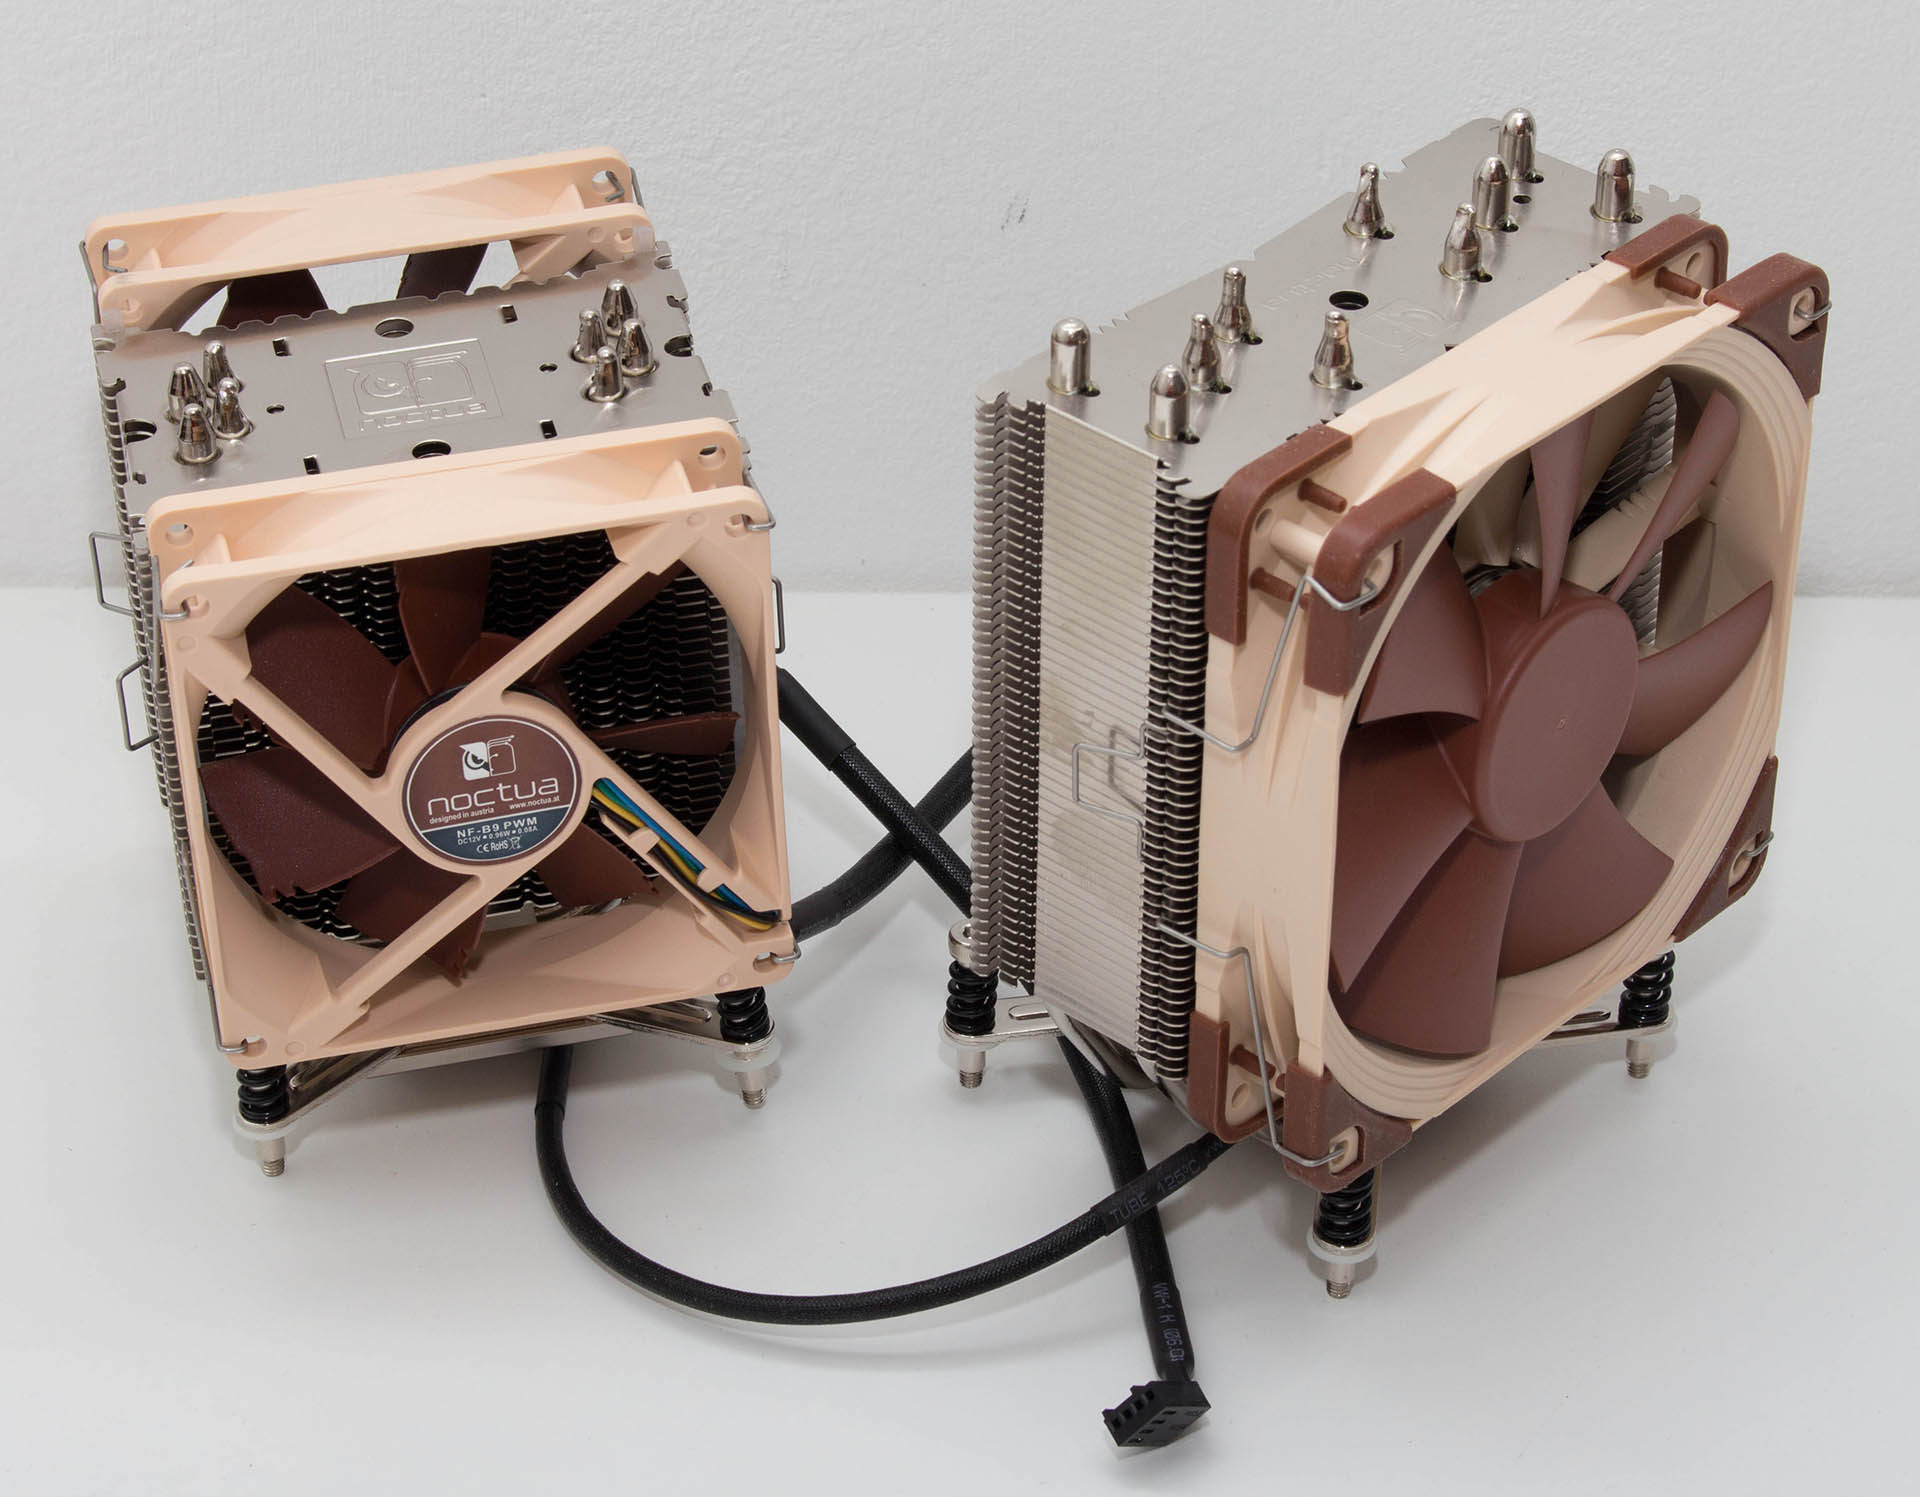 Noctua NH-U12DX i4 & U9DX i4 test